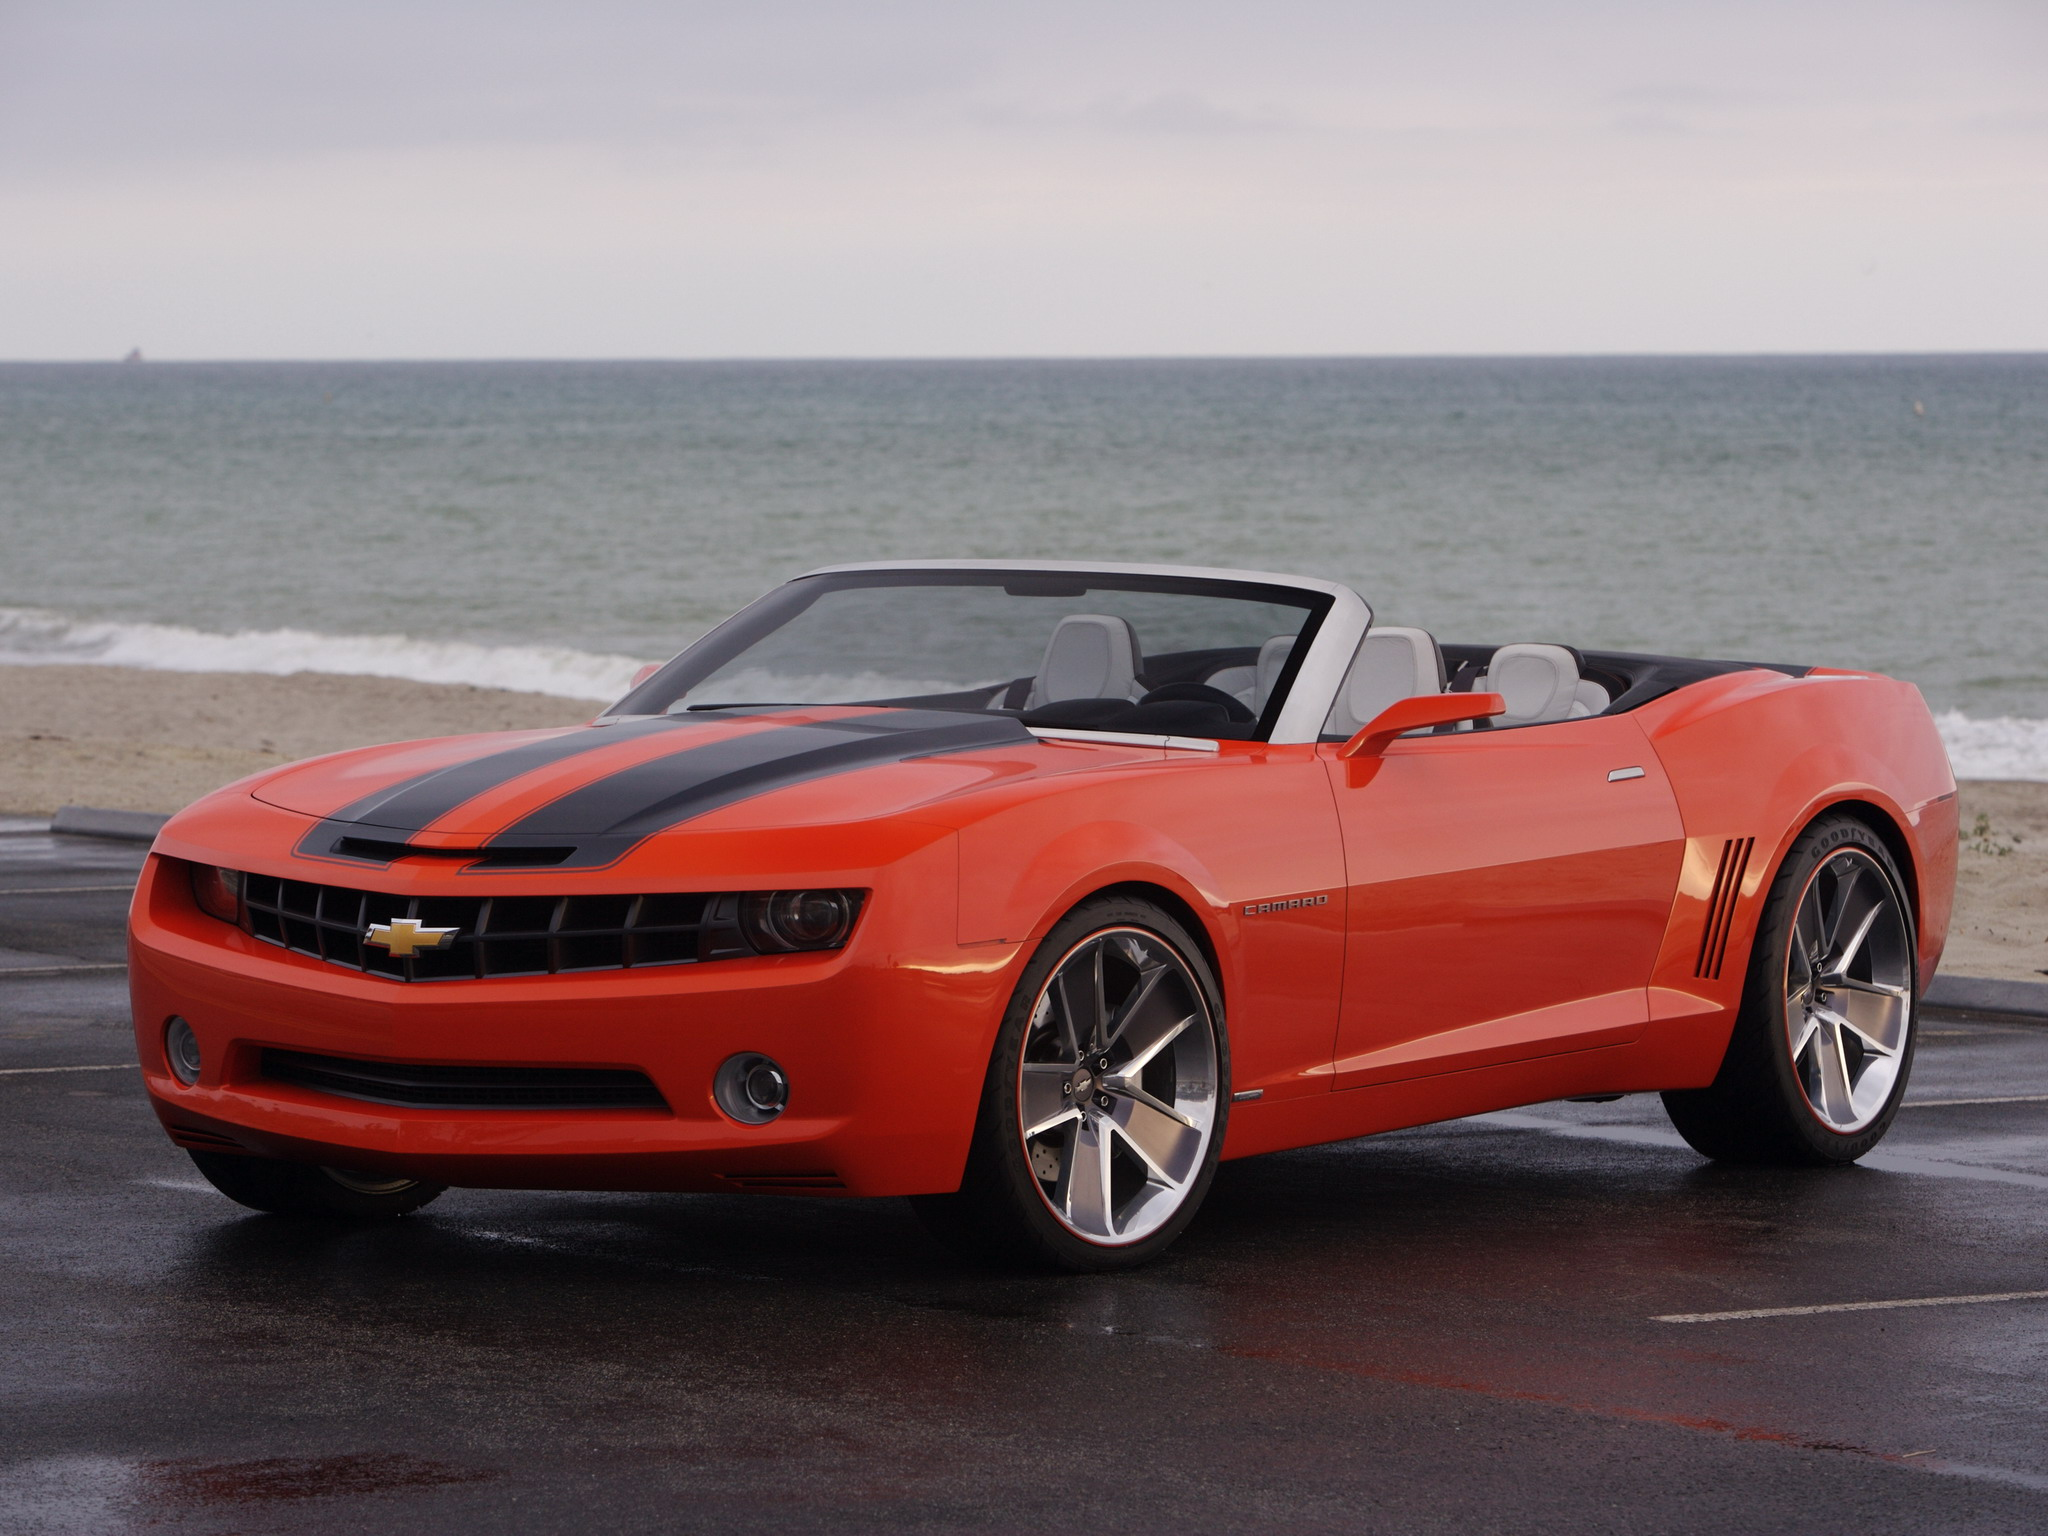 2018 Chevrolet Camaro Convertible Concept photo - 3